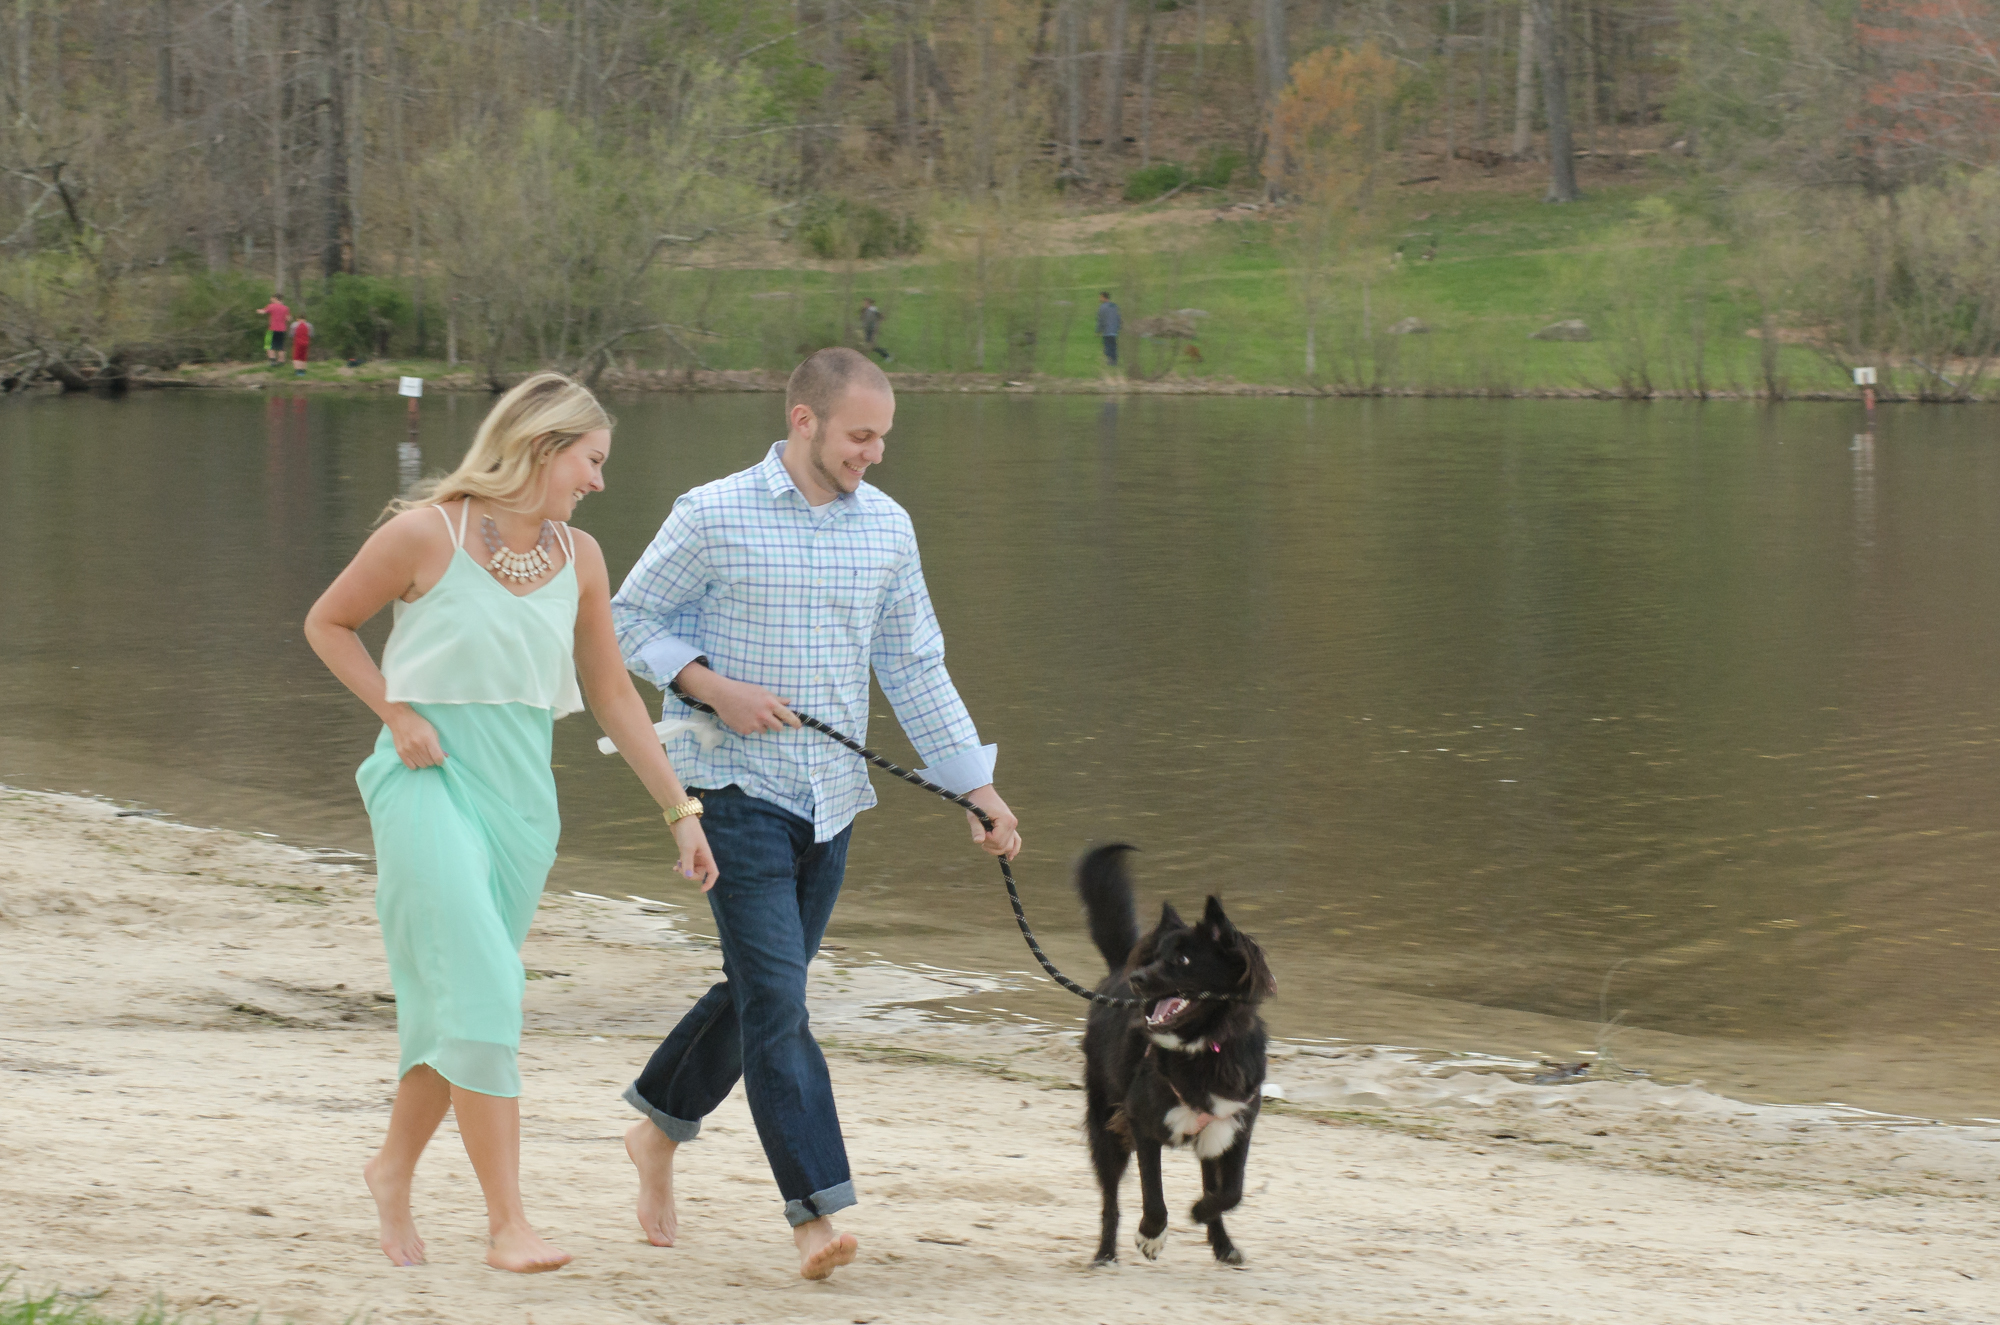 cunningham falls engagement session photo couple running with dog on beach